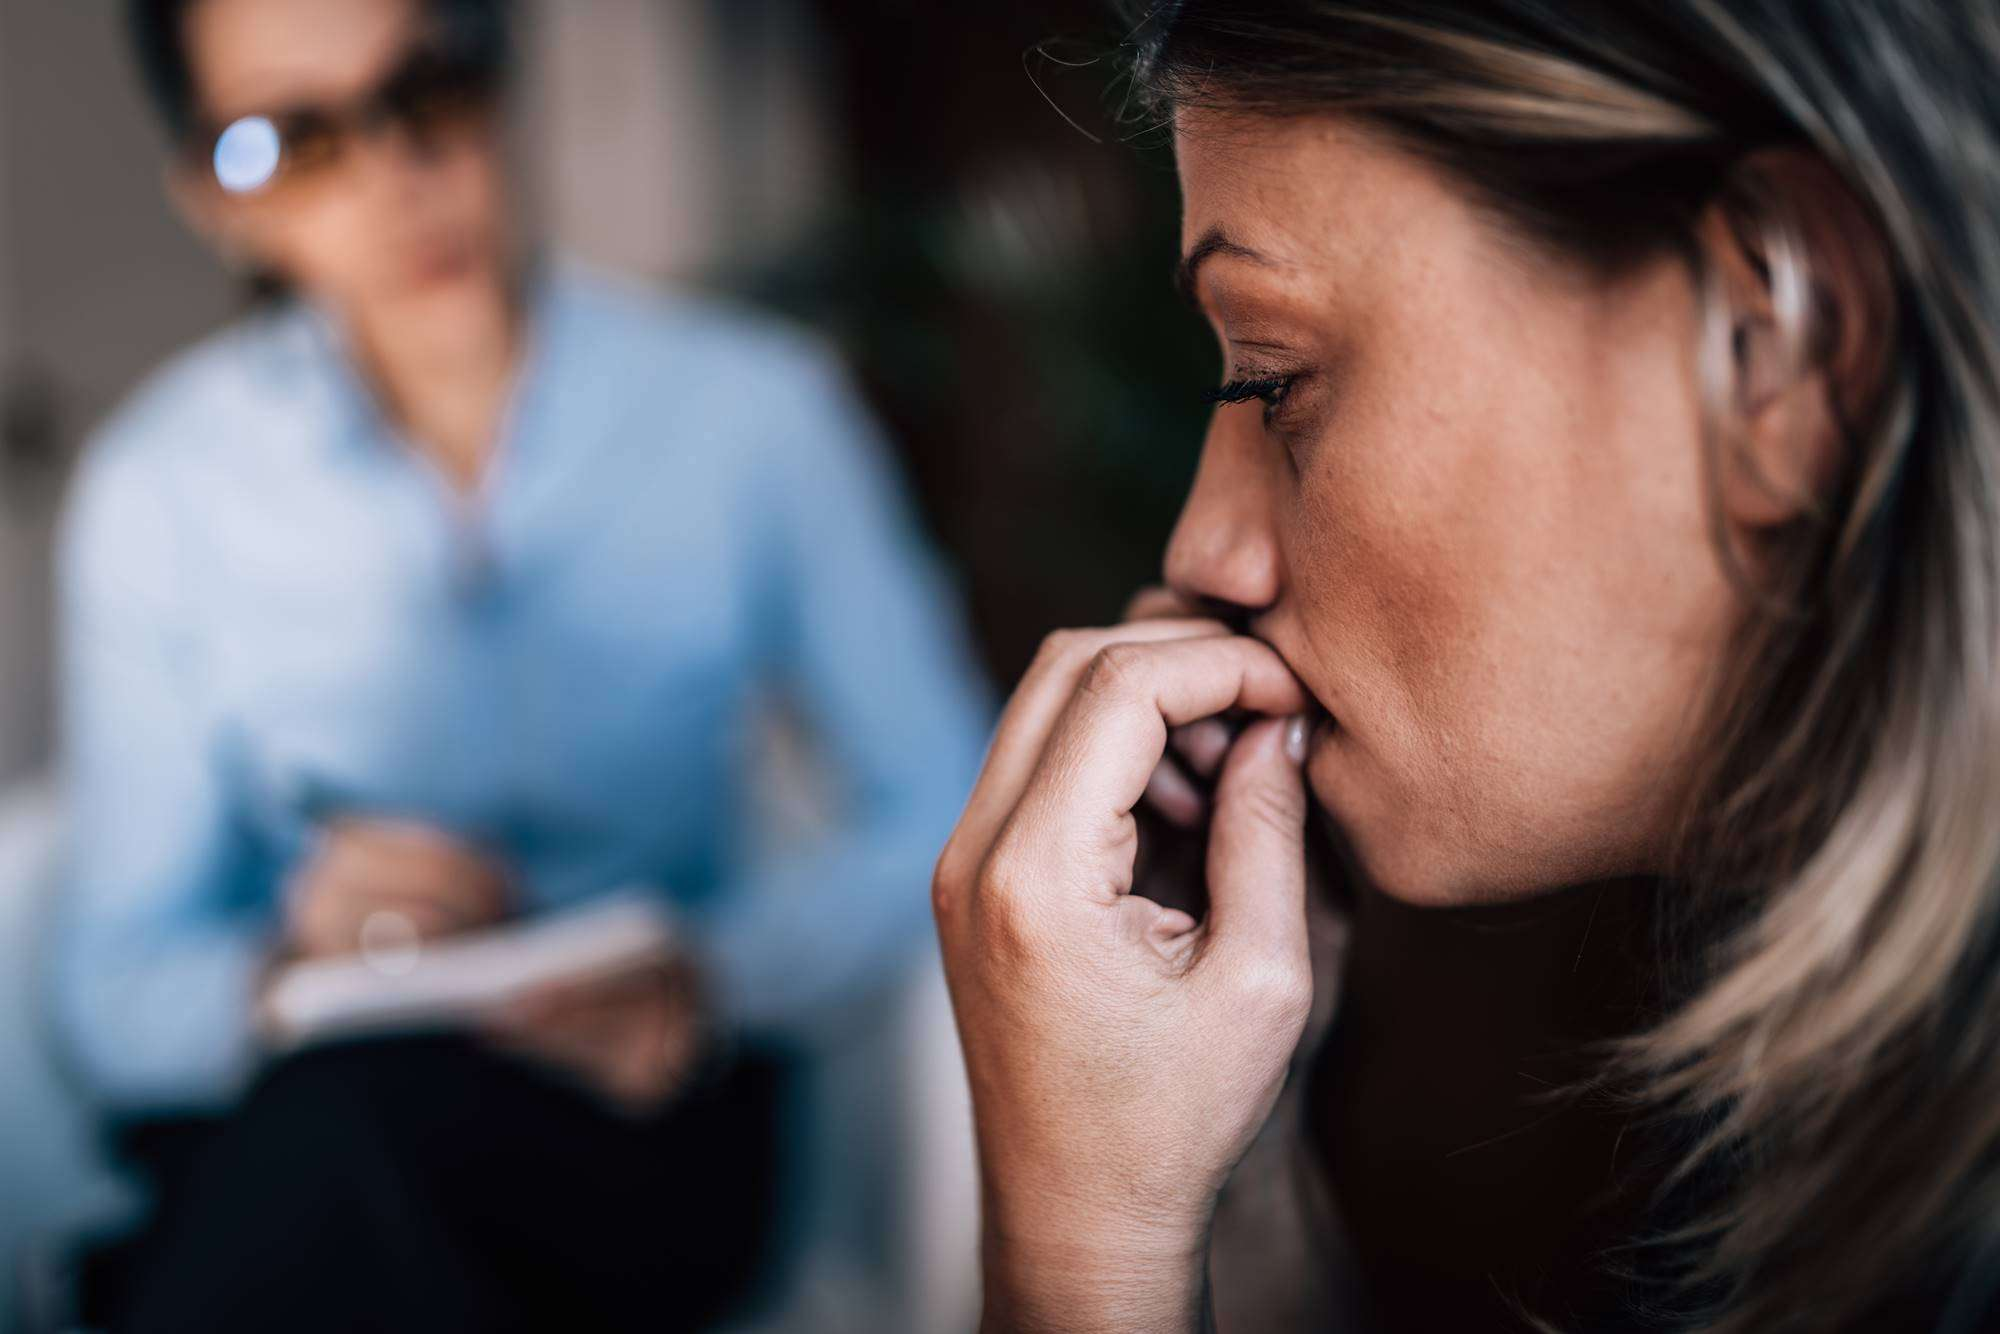 Woman with Anxiety Disorder, Biting Fingernails, Talking to Mental Health Professional